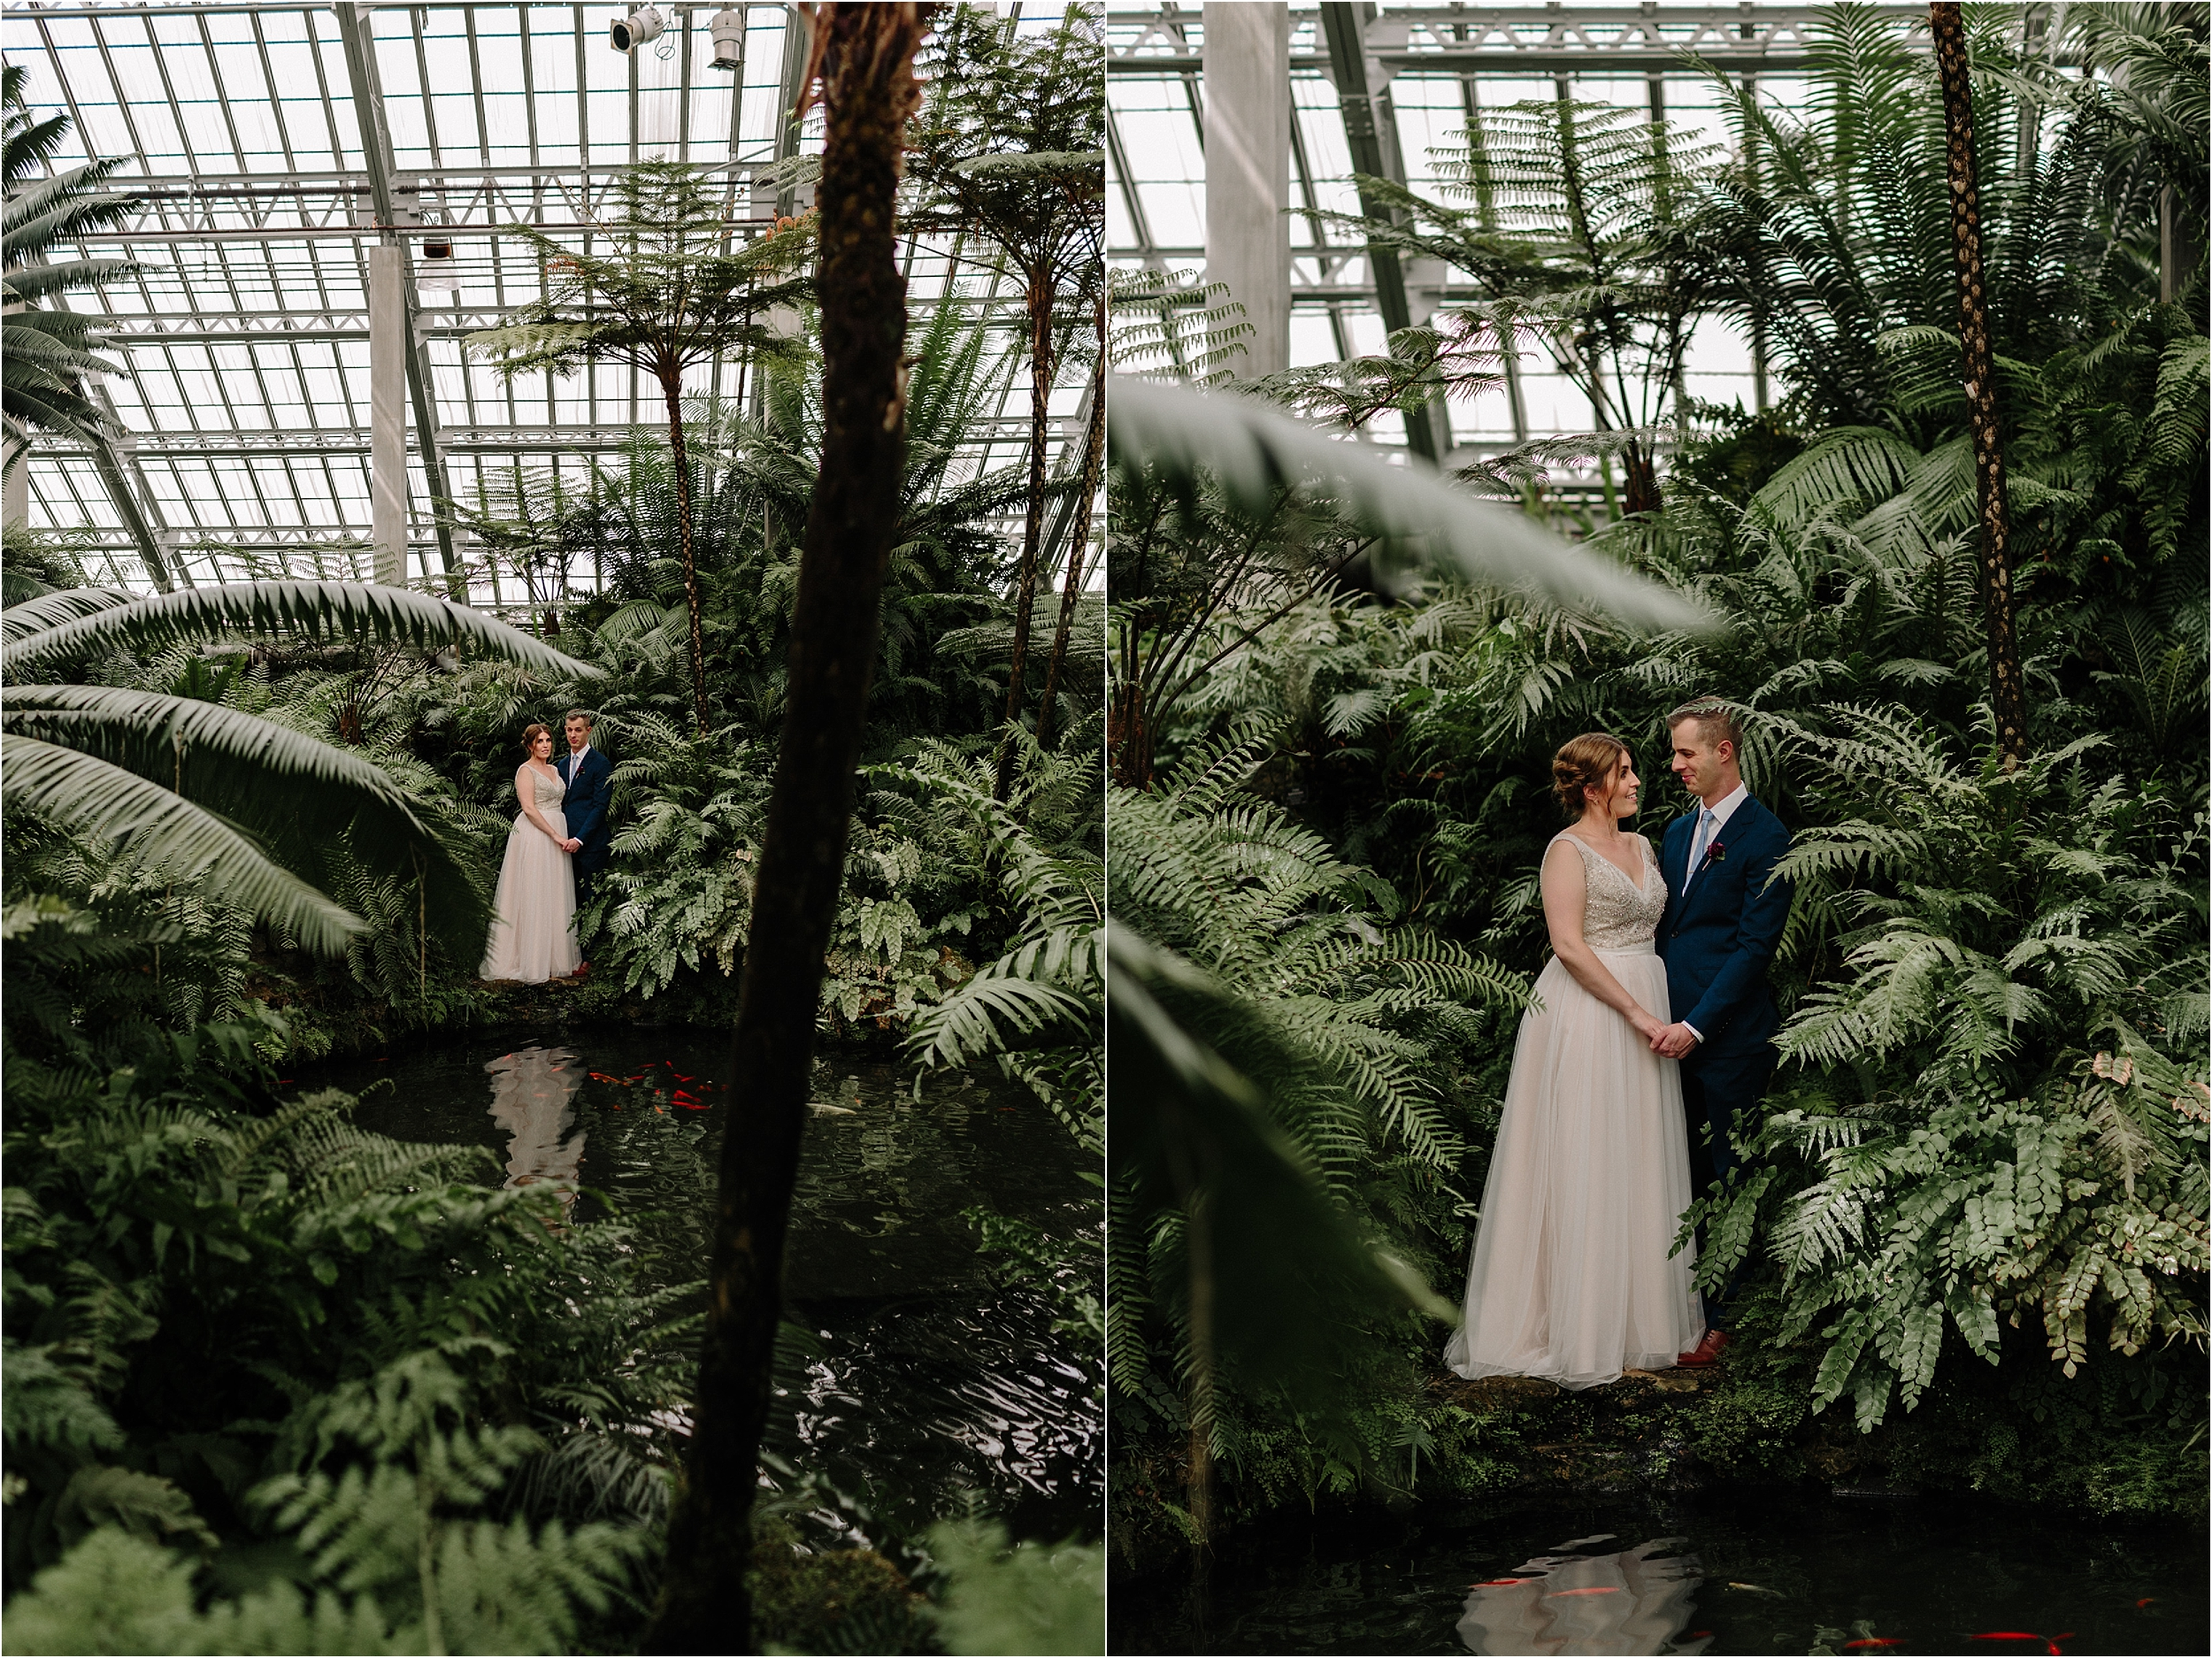 Garfield Park Conservatory Wedding.Erika Mattingly Photography Chicago Wedding And Lifestyle Photographer